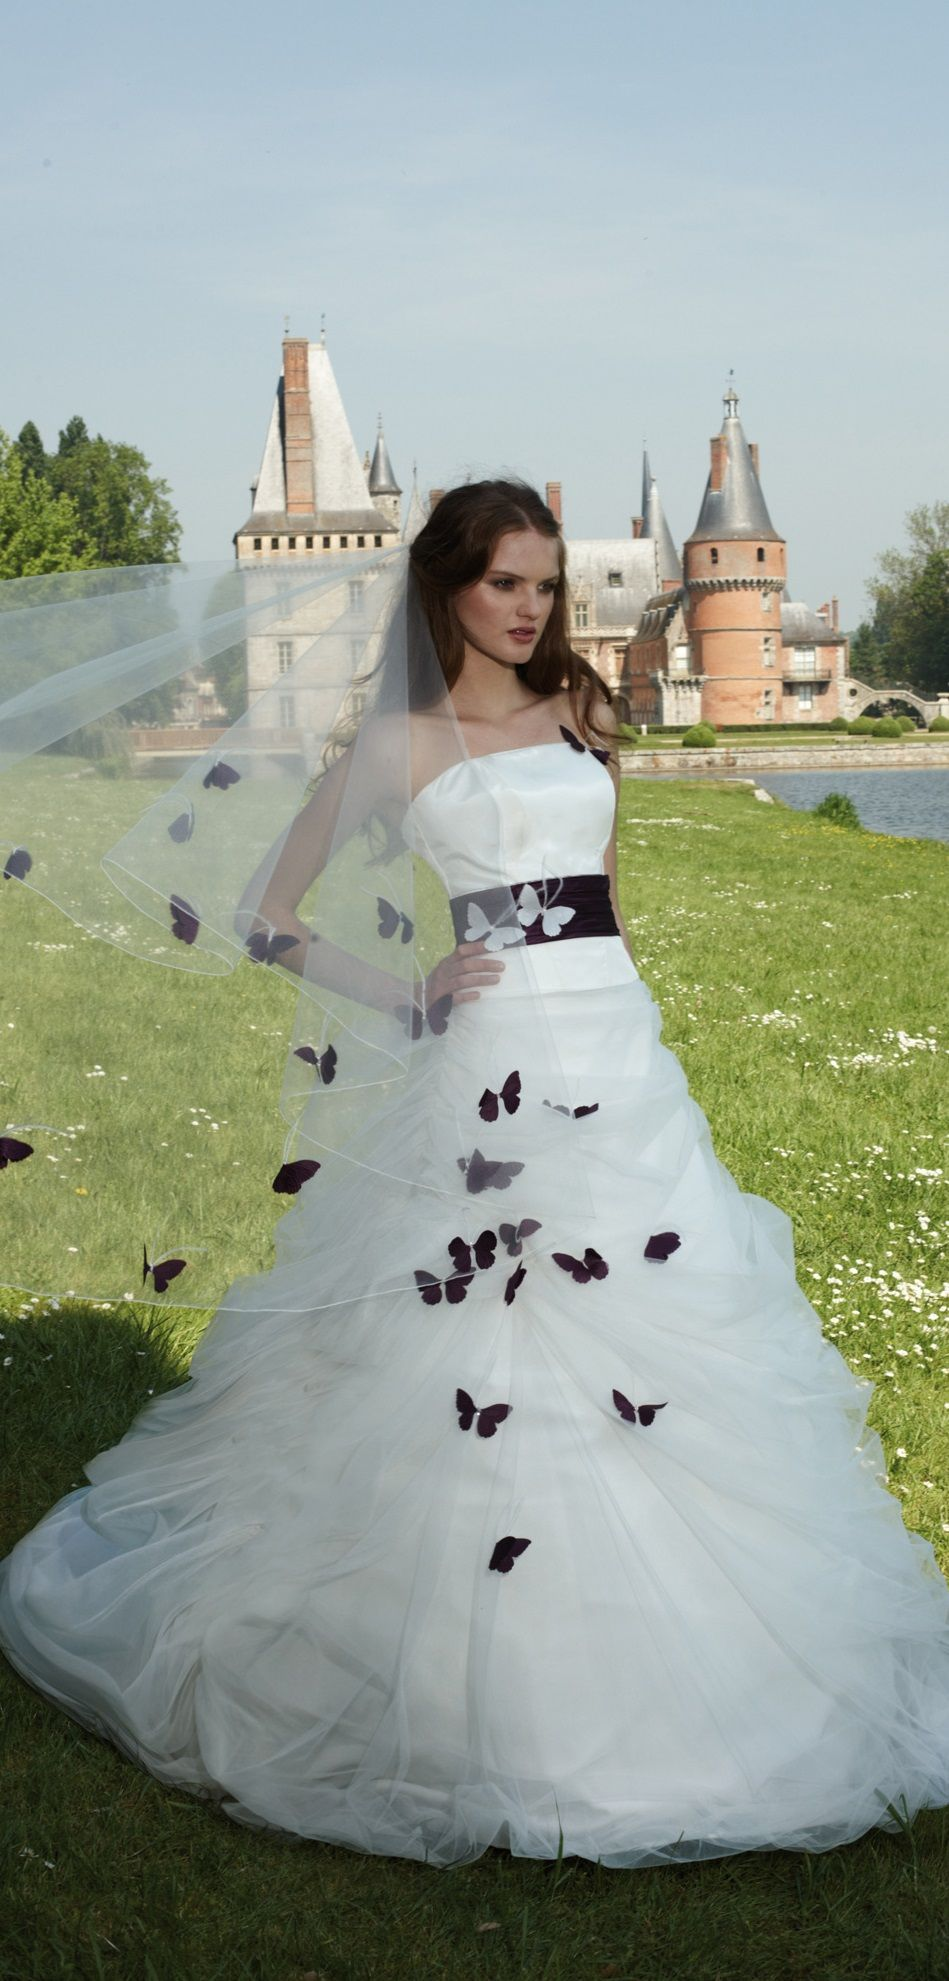 Princess Wedding Dress With Butterfly Accents By Sacha Novia Princess Wedding Dress Dresses Gorgeous Gowns [ 1981 x 949 Pixel ]